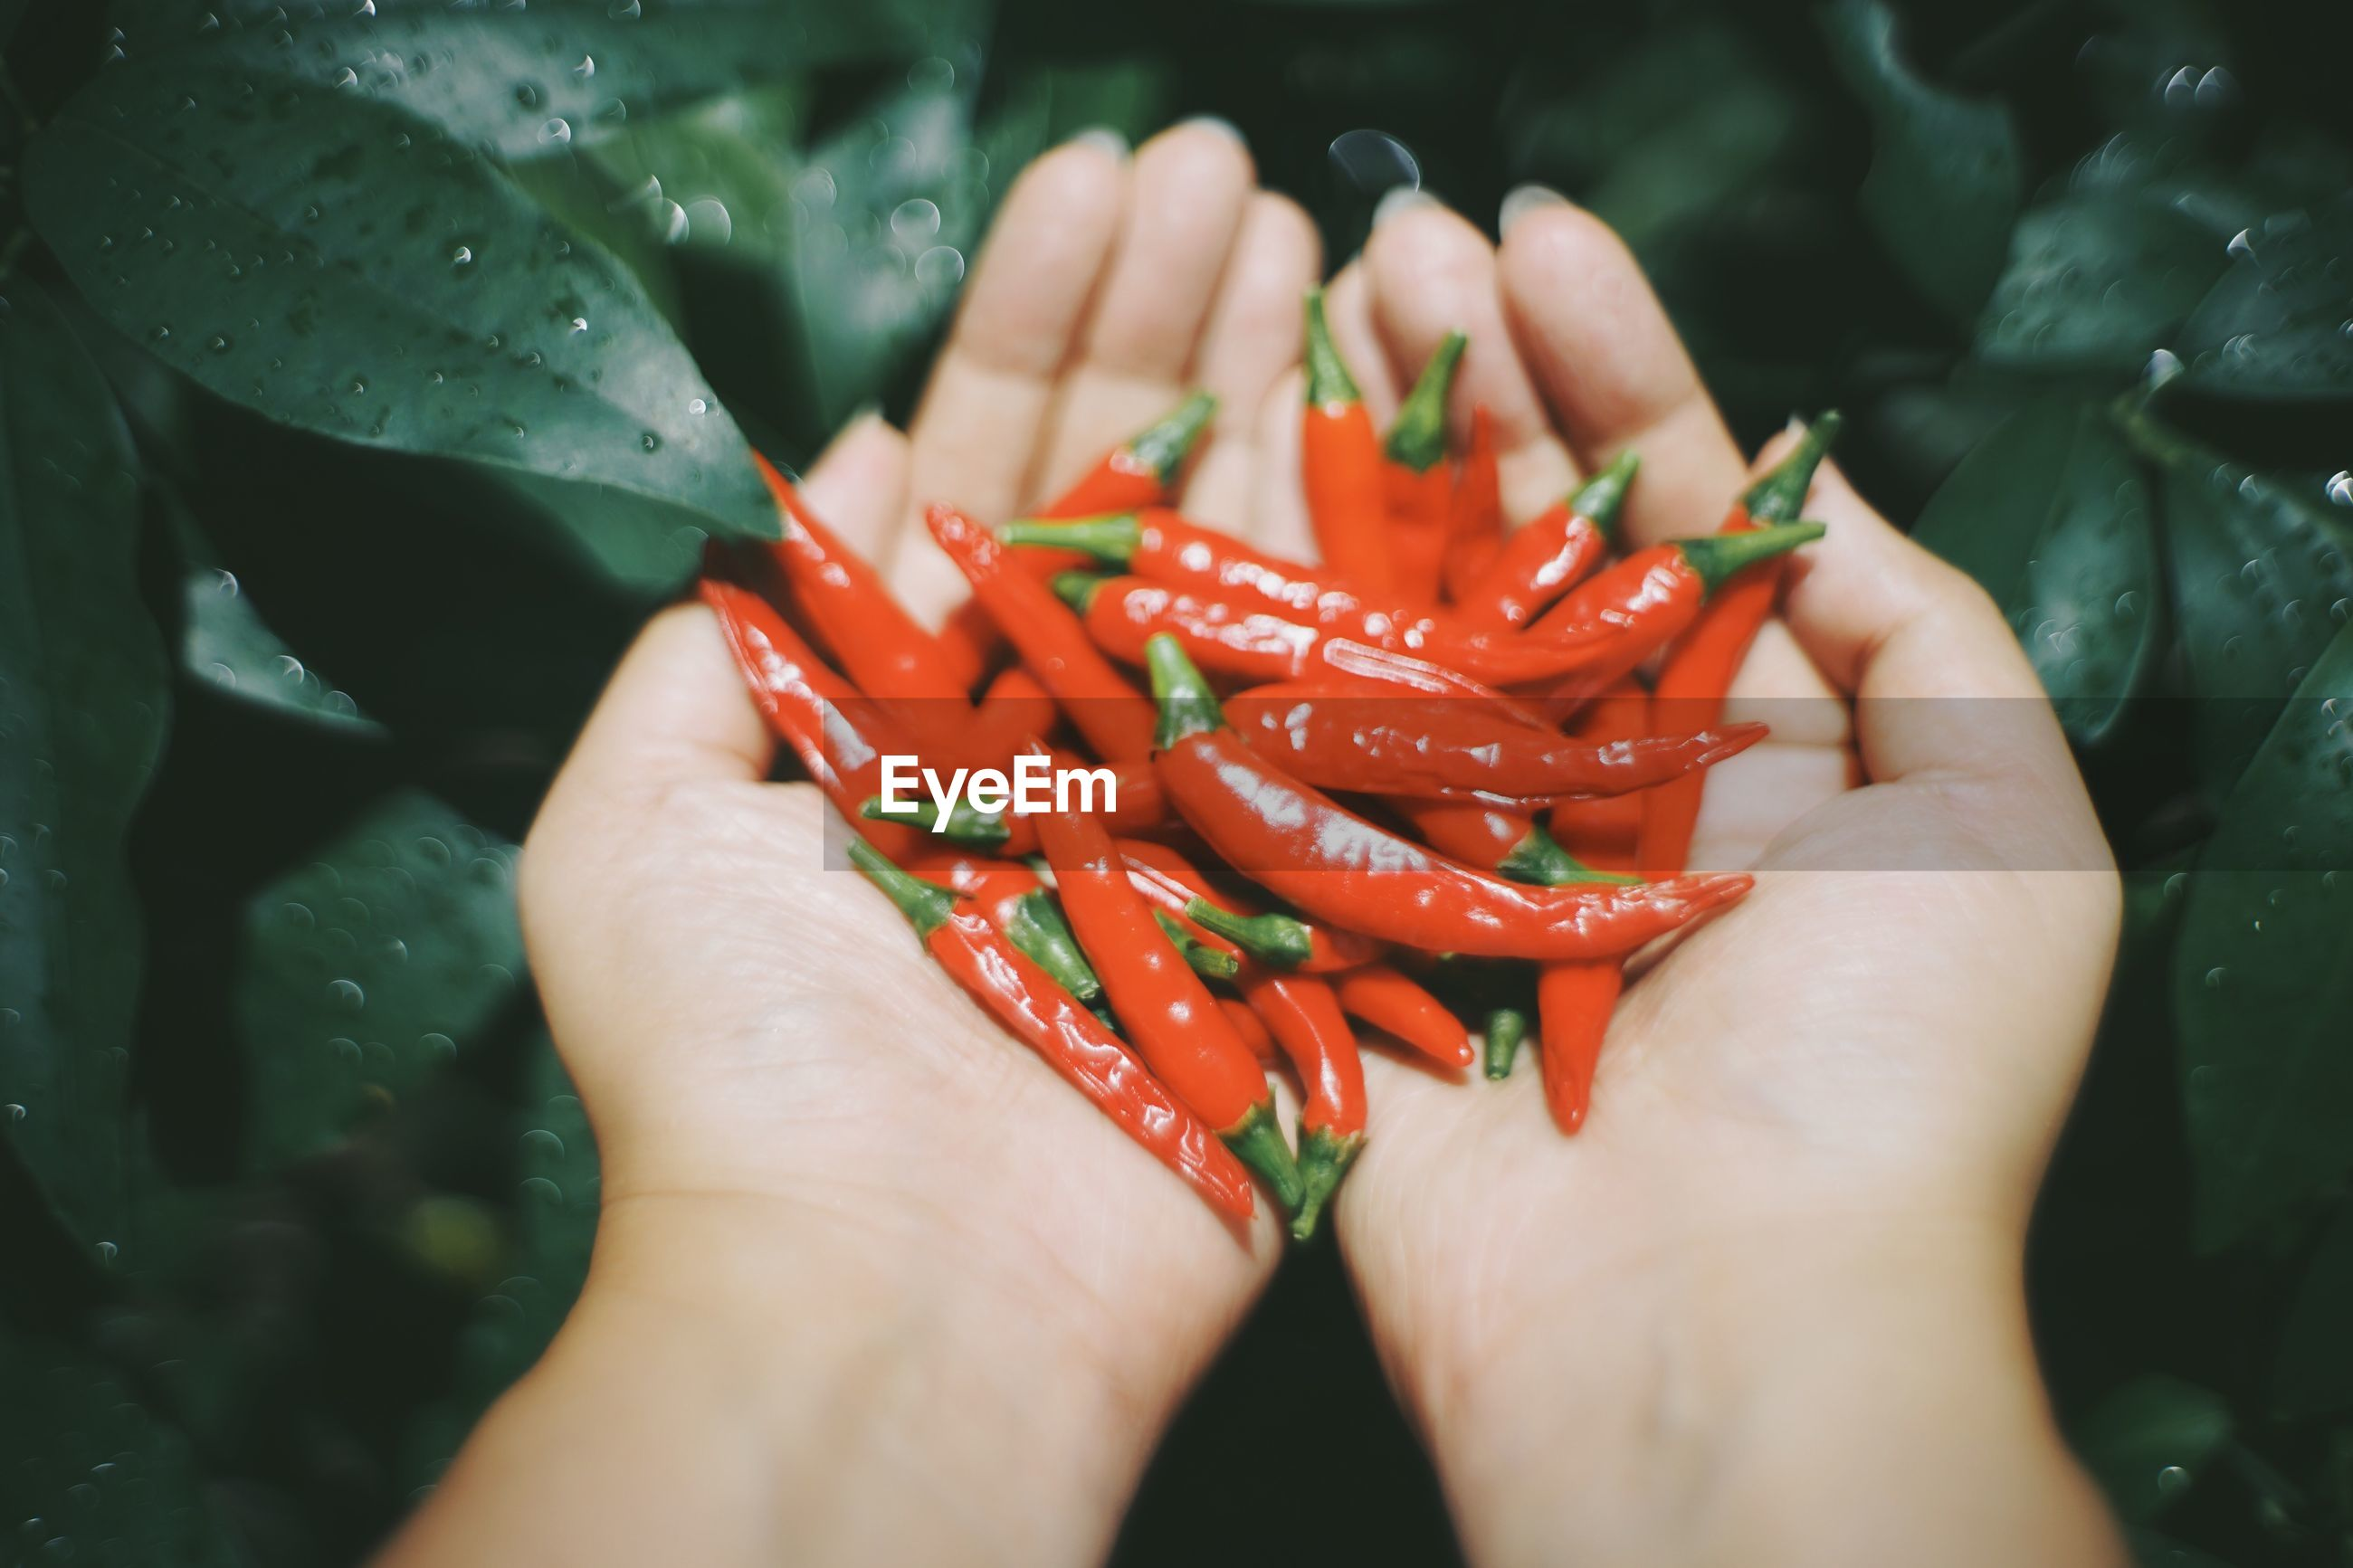 Close-up of hand holding red chili